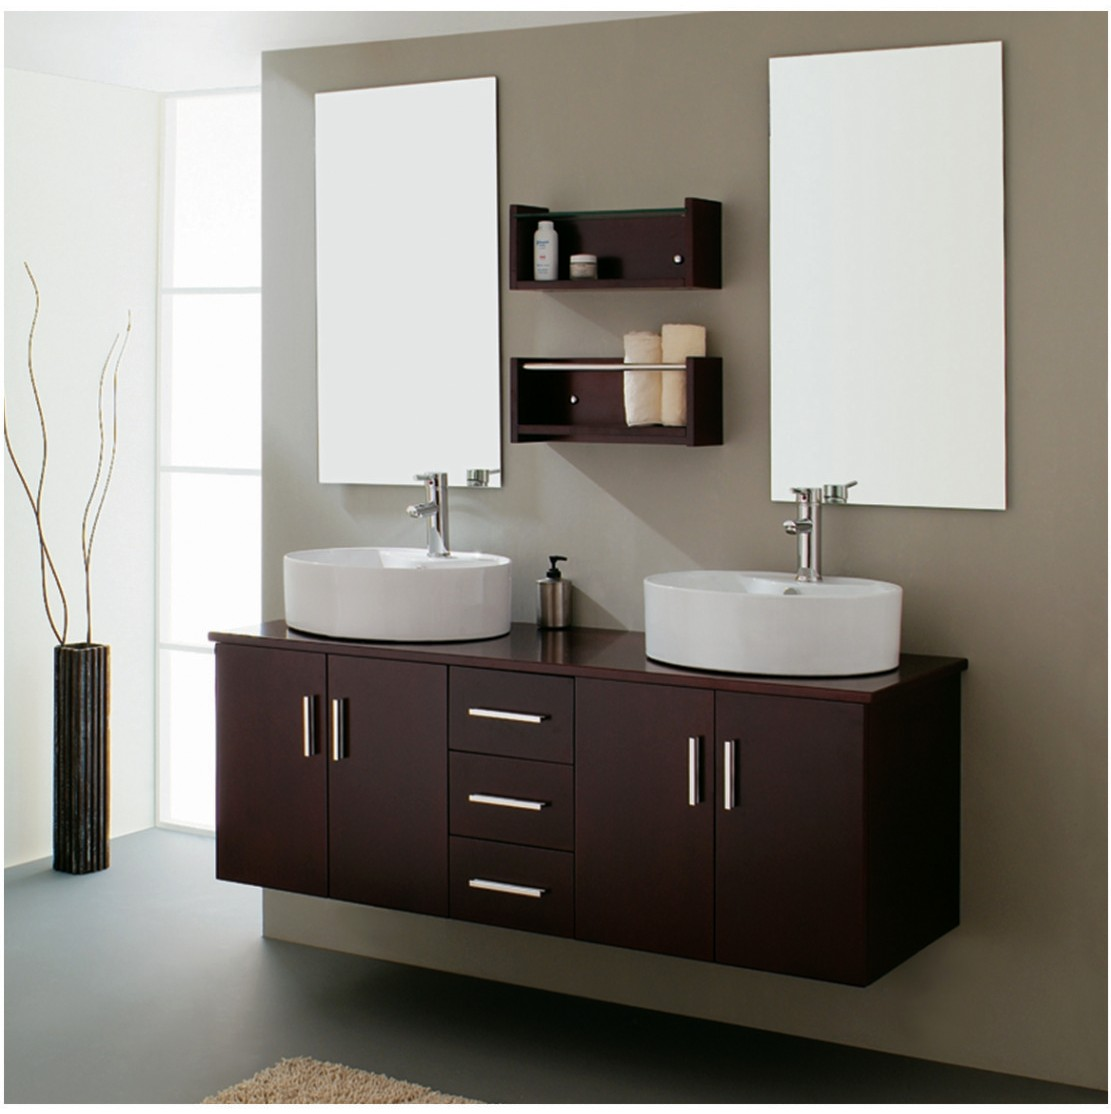 Luxury Todays Bathroom Vanities Are Often Expected  Tyler Sees Large, Furniturestyle Vanities Becoming More Popular In The Master Bath The Availability Of Double